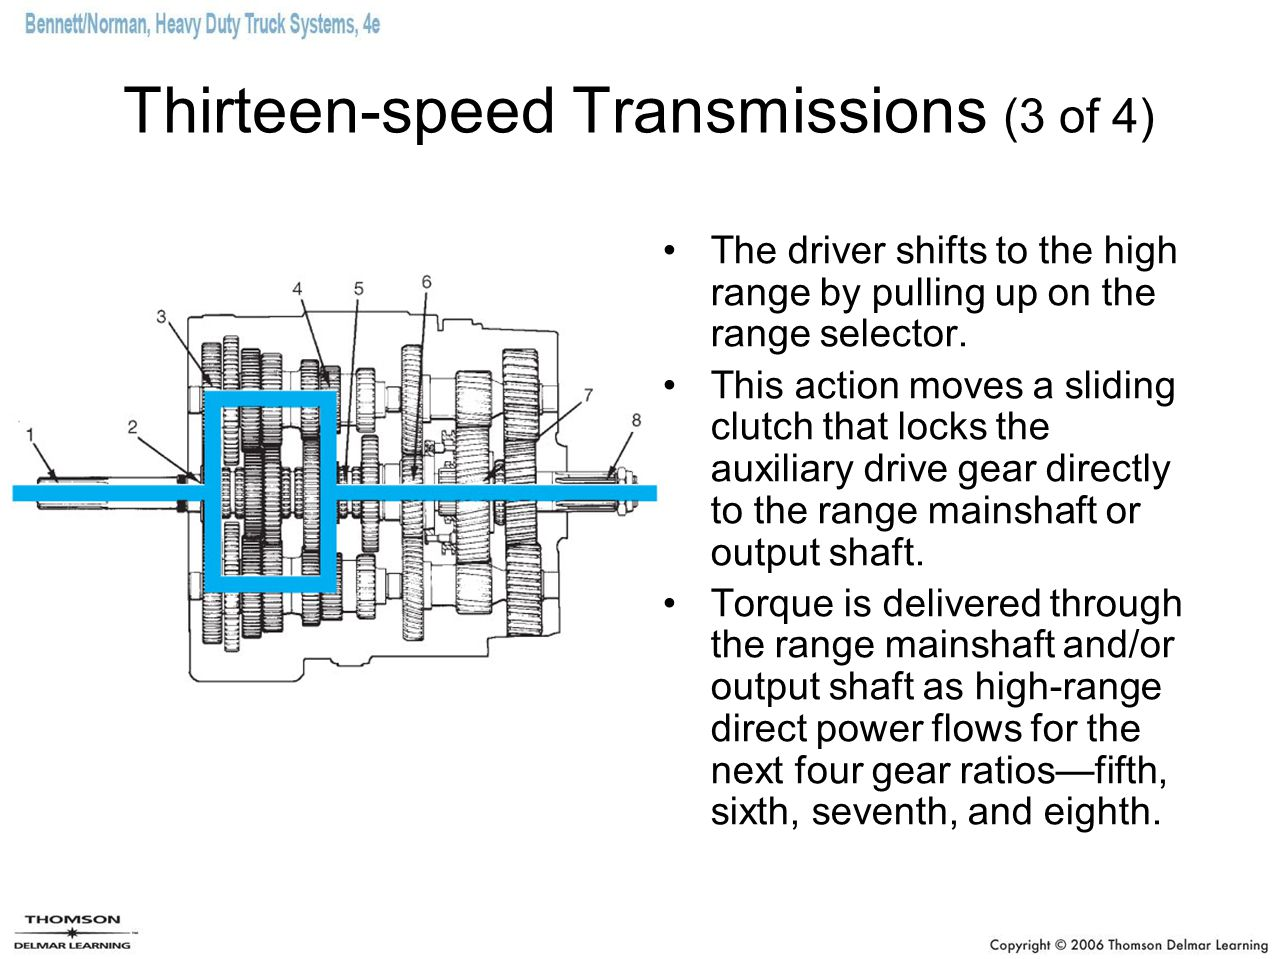 Thirteen-speed Transmissions (3 of 4)